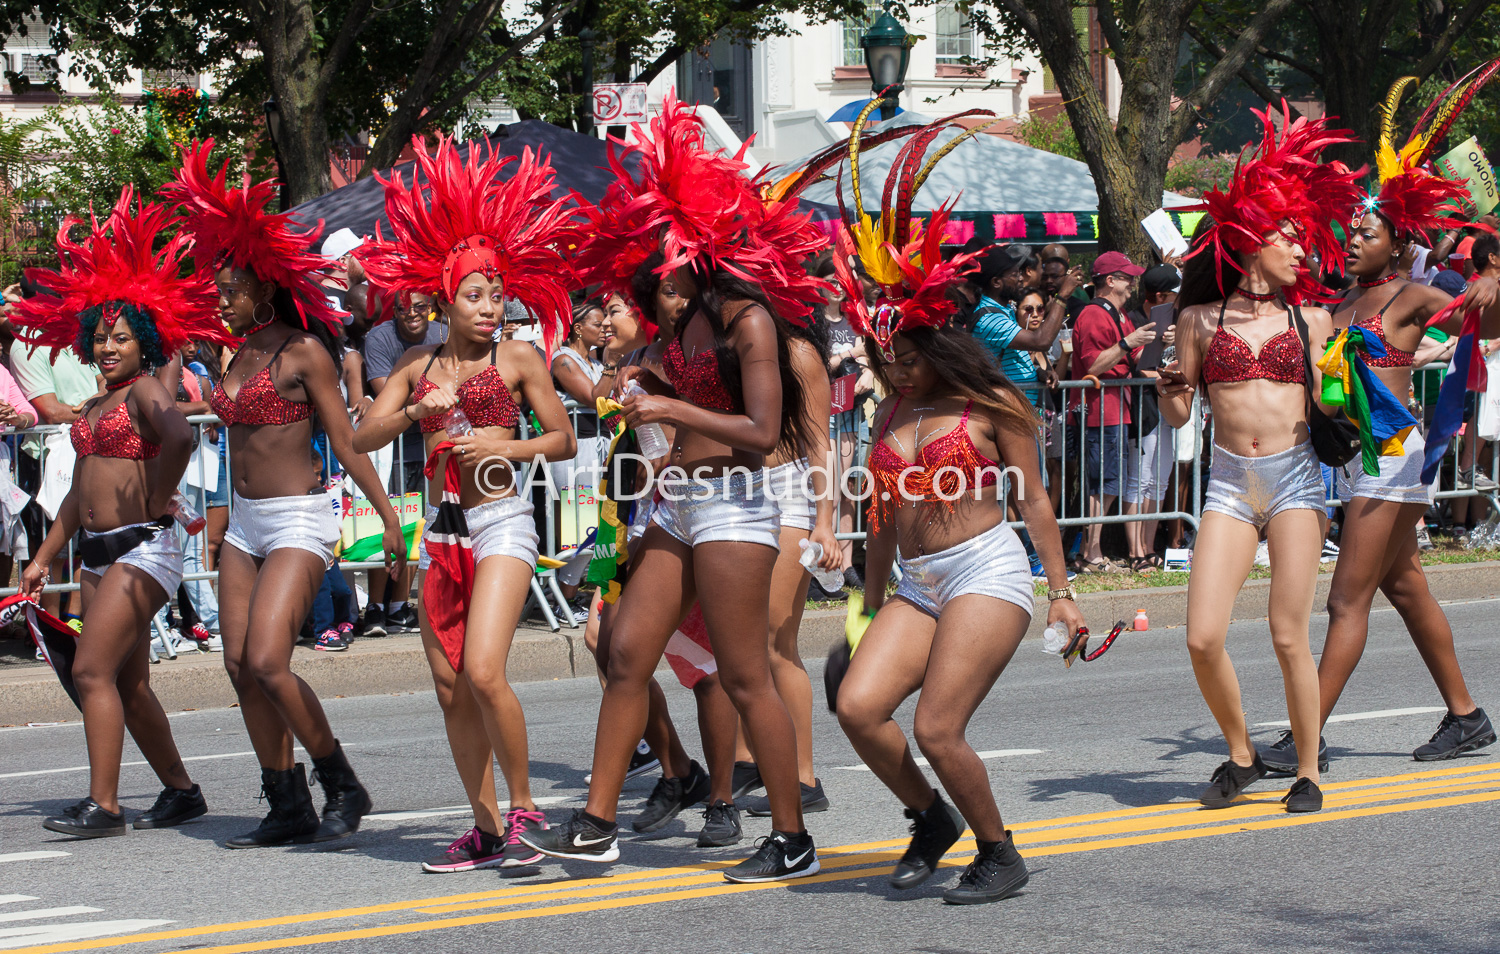 September 2016. Brooklyn, NYC – 49th West Indian Caribbean Carnival Parade.  Photo by ArtDesnudo.com